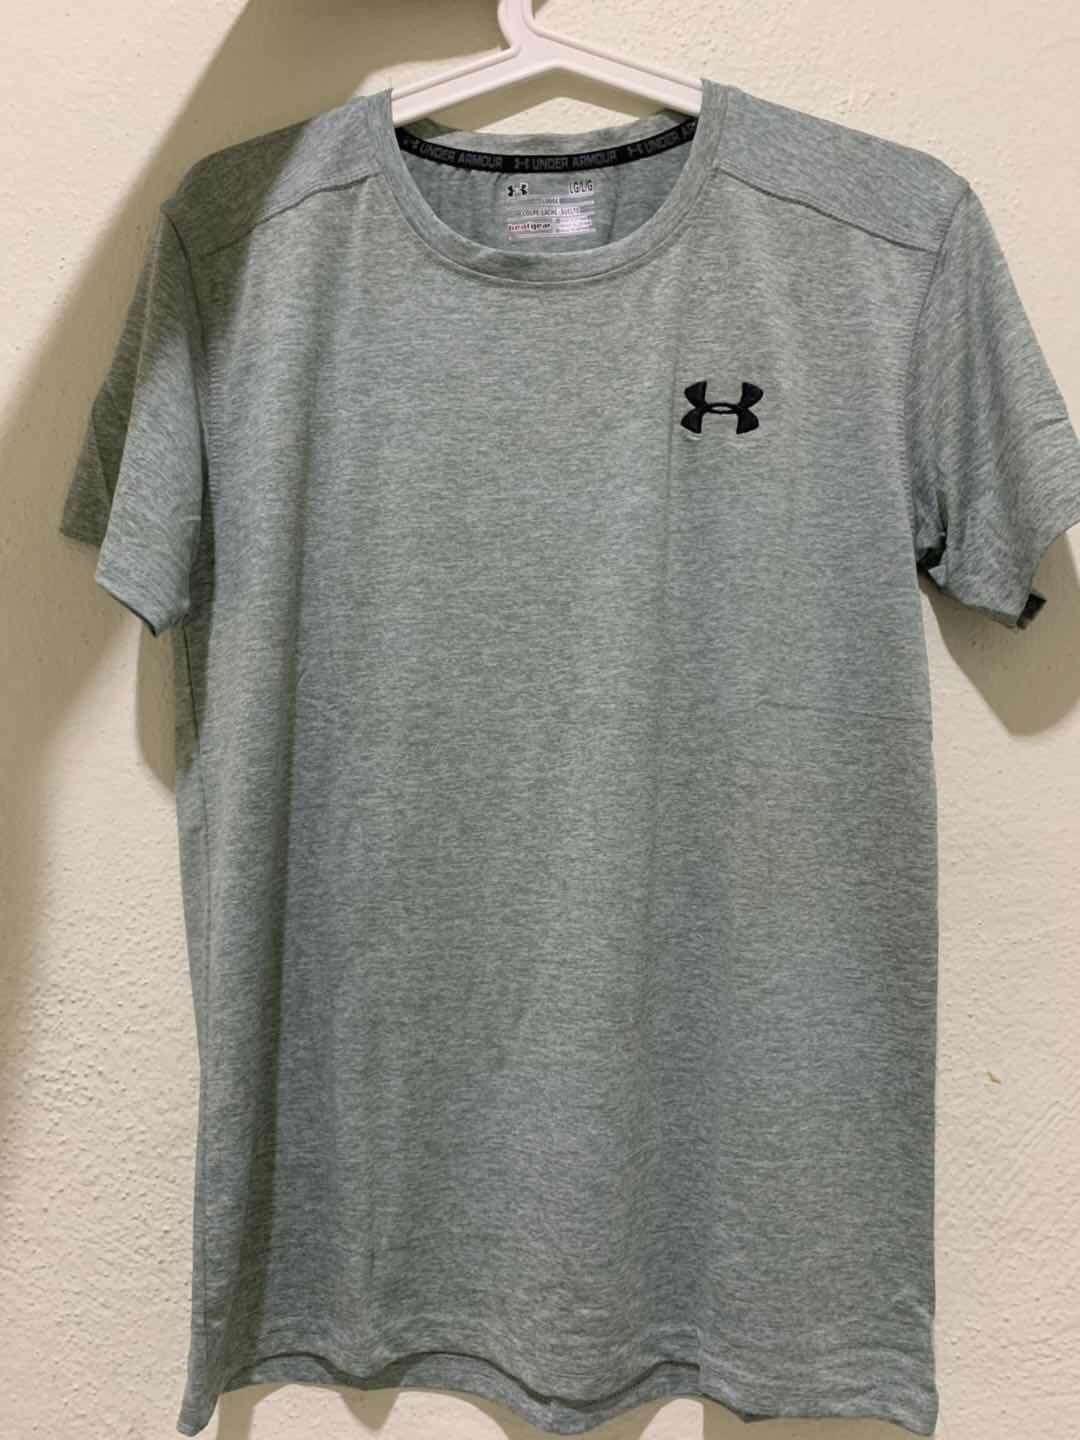 where to buy under armour shirts